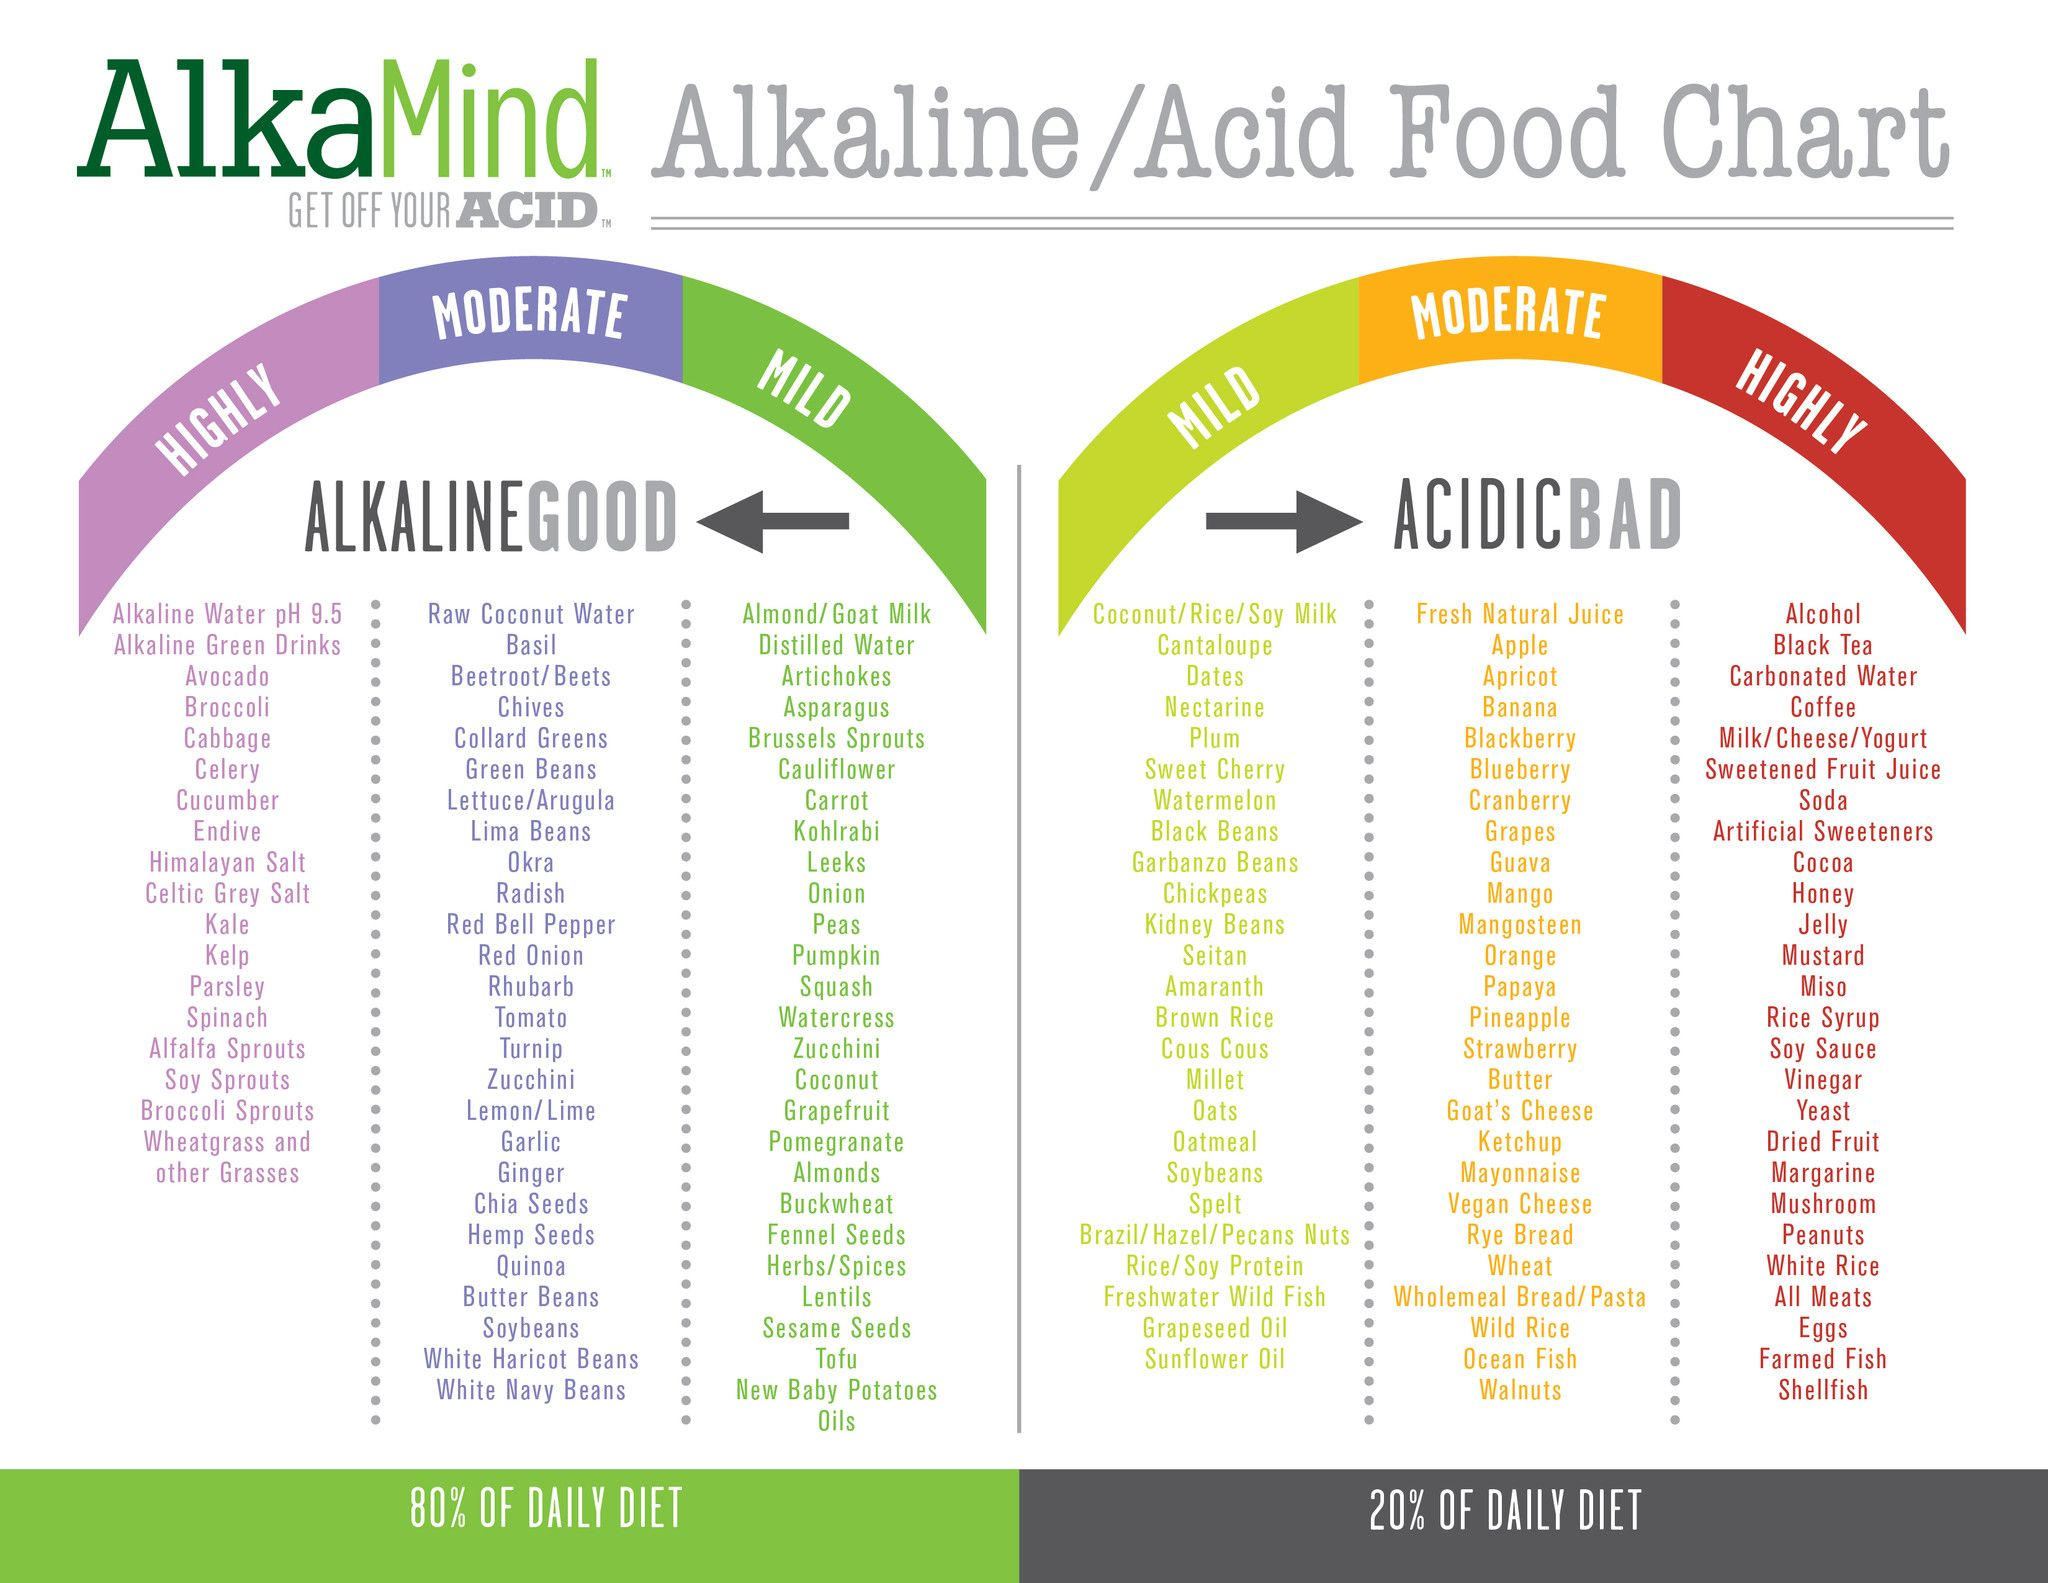 Are Alkaline Foods Good For Acid Reflux